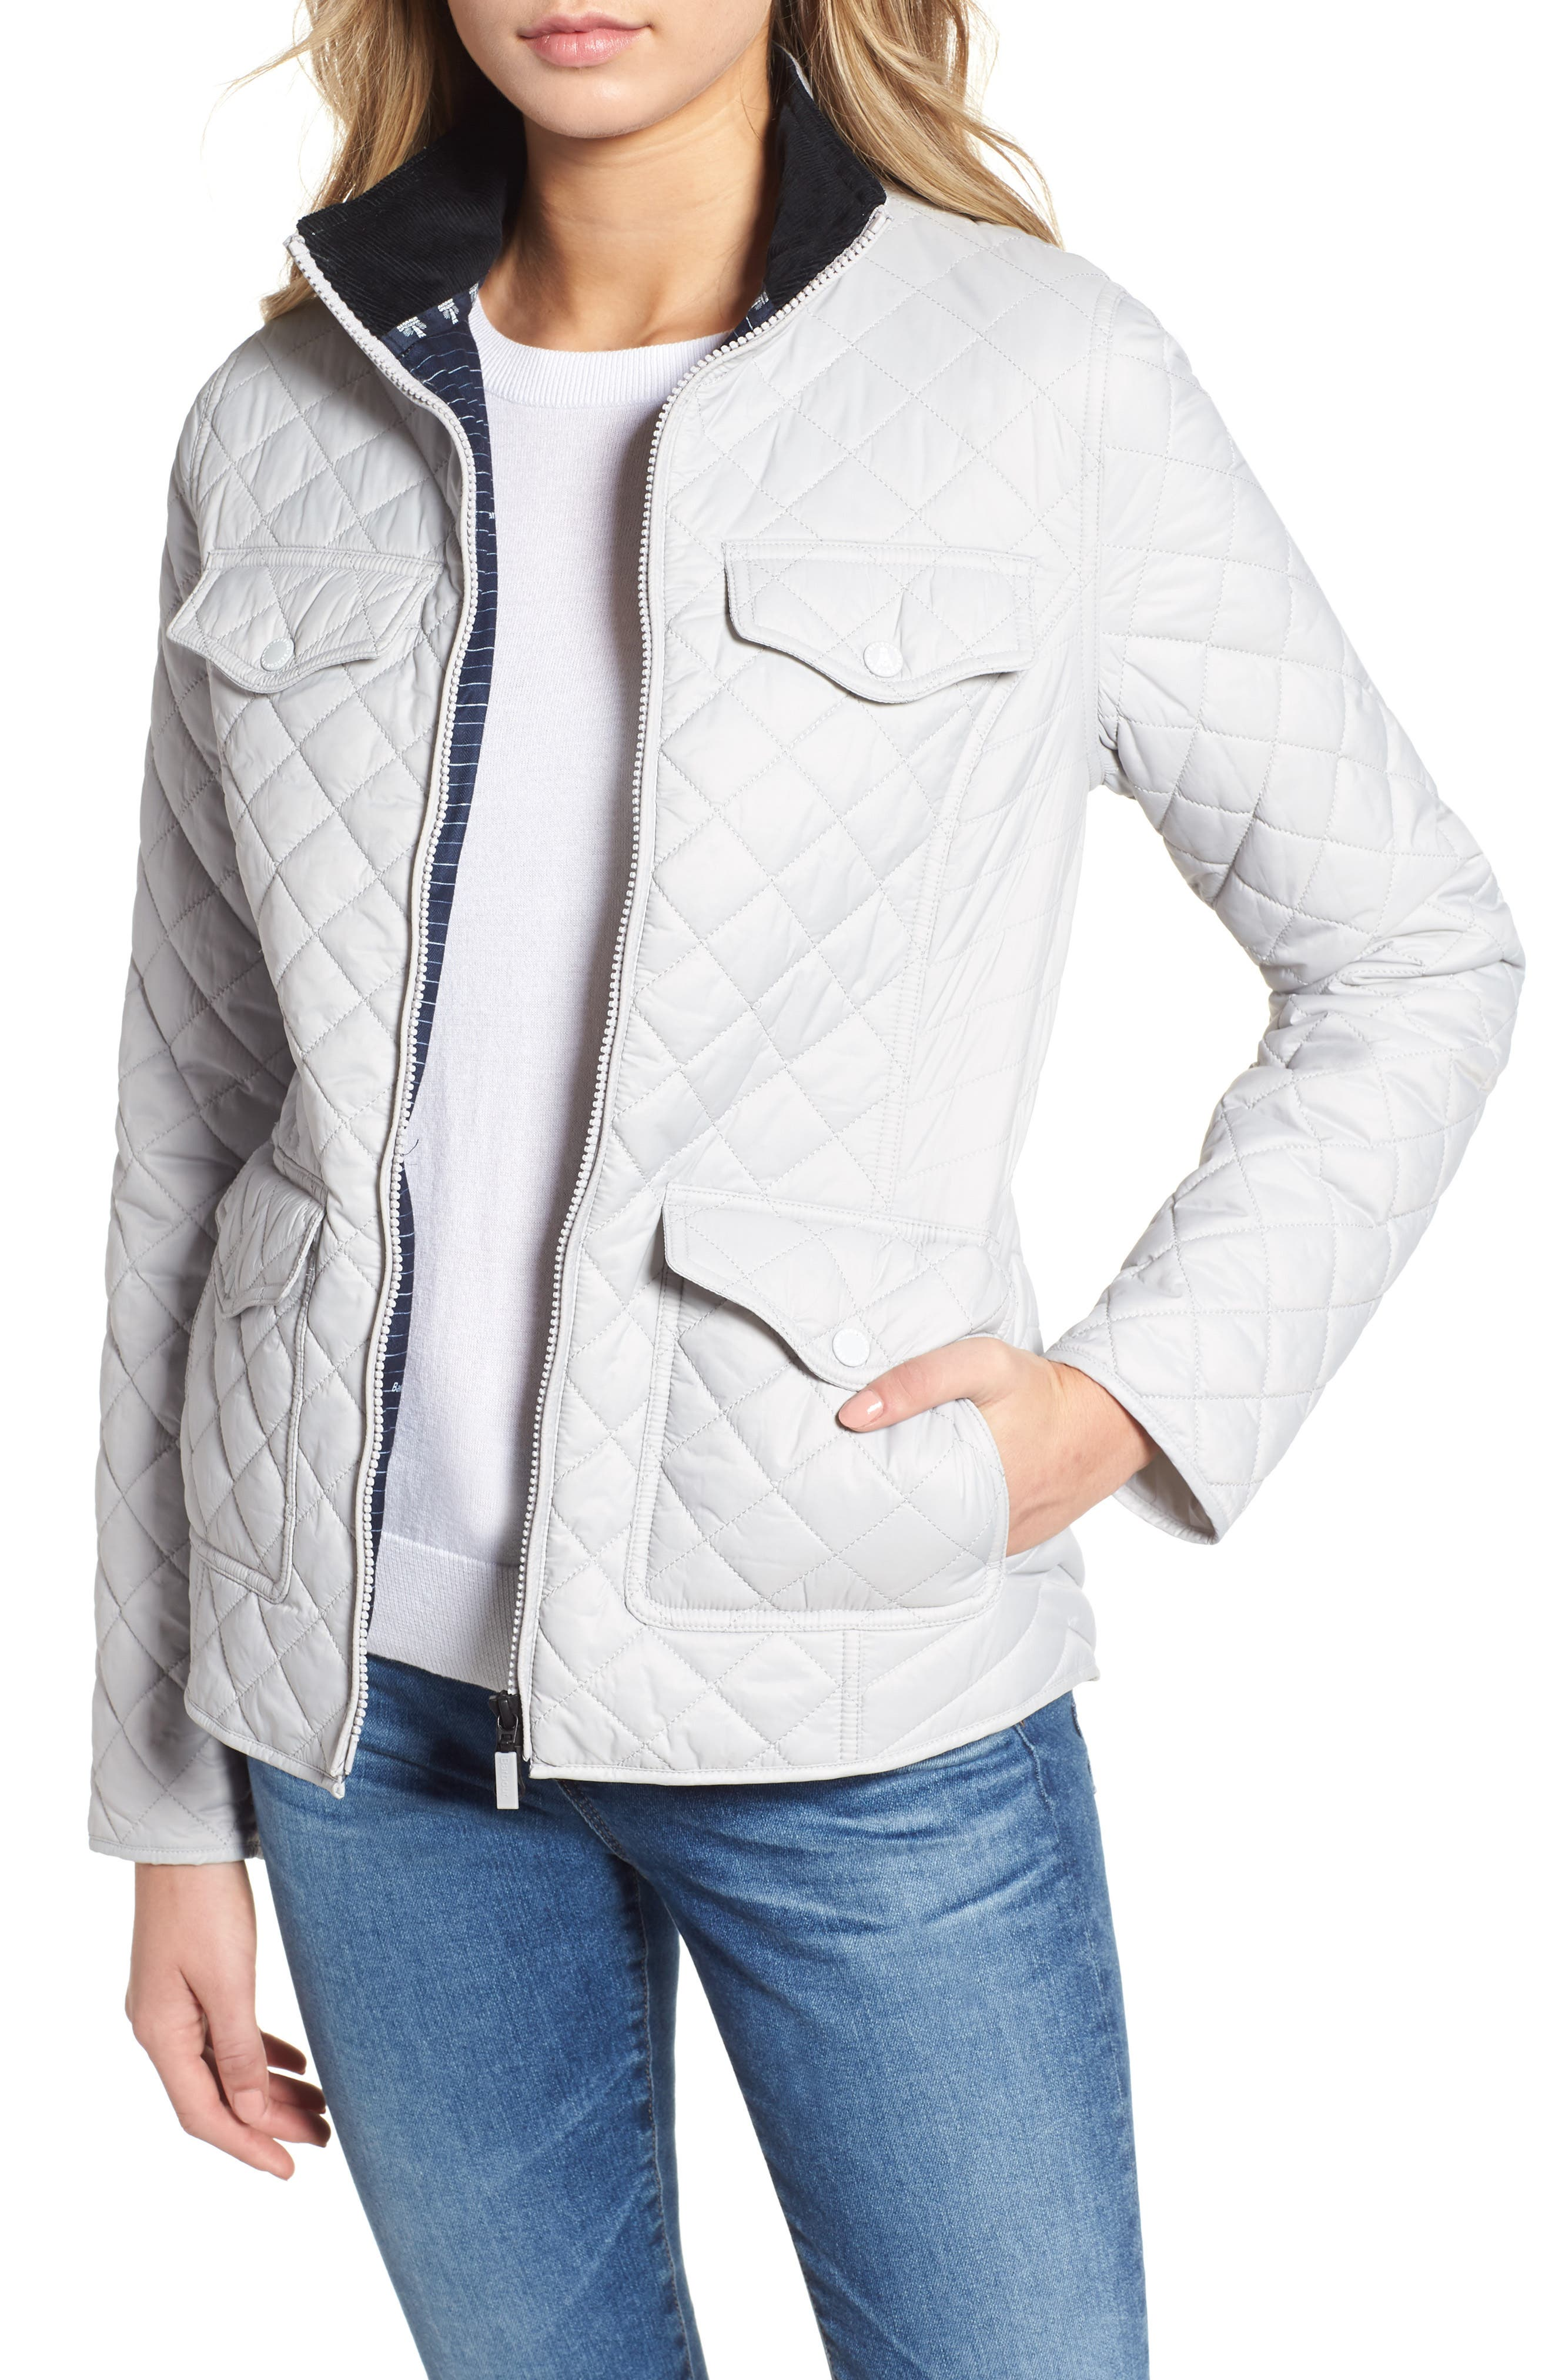 BARBOUR, Sailboat Quilted Jacket, Main thumbnail 1, color, 100